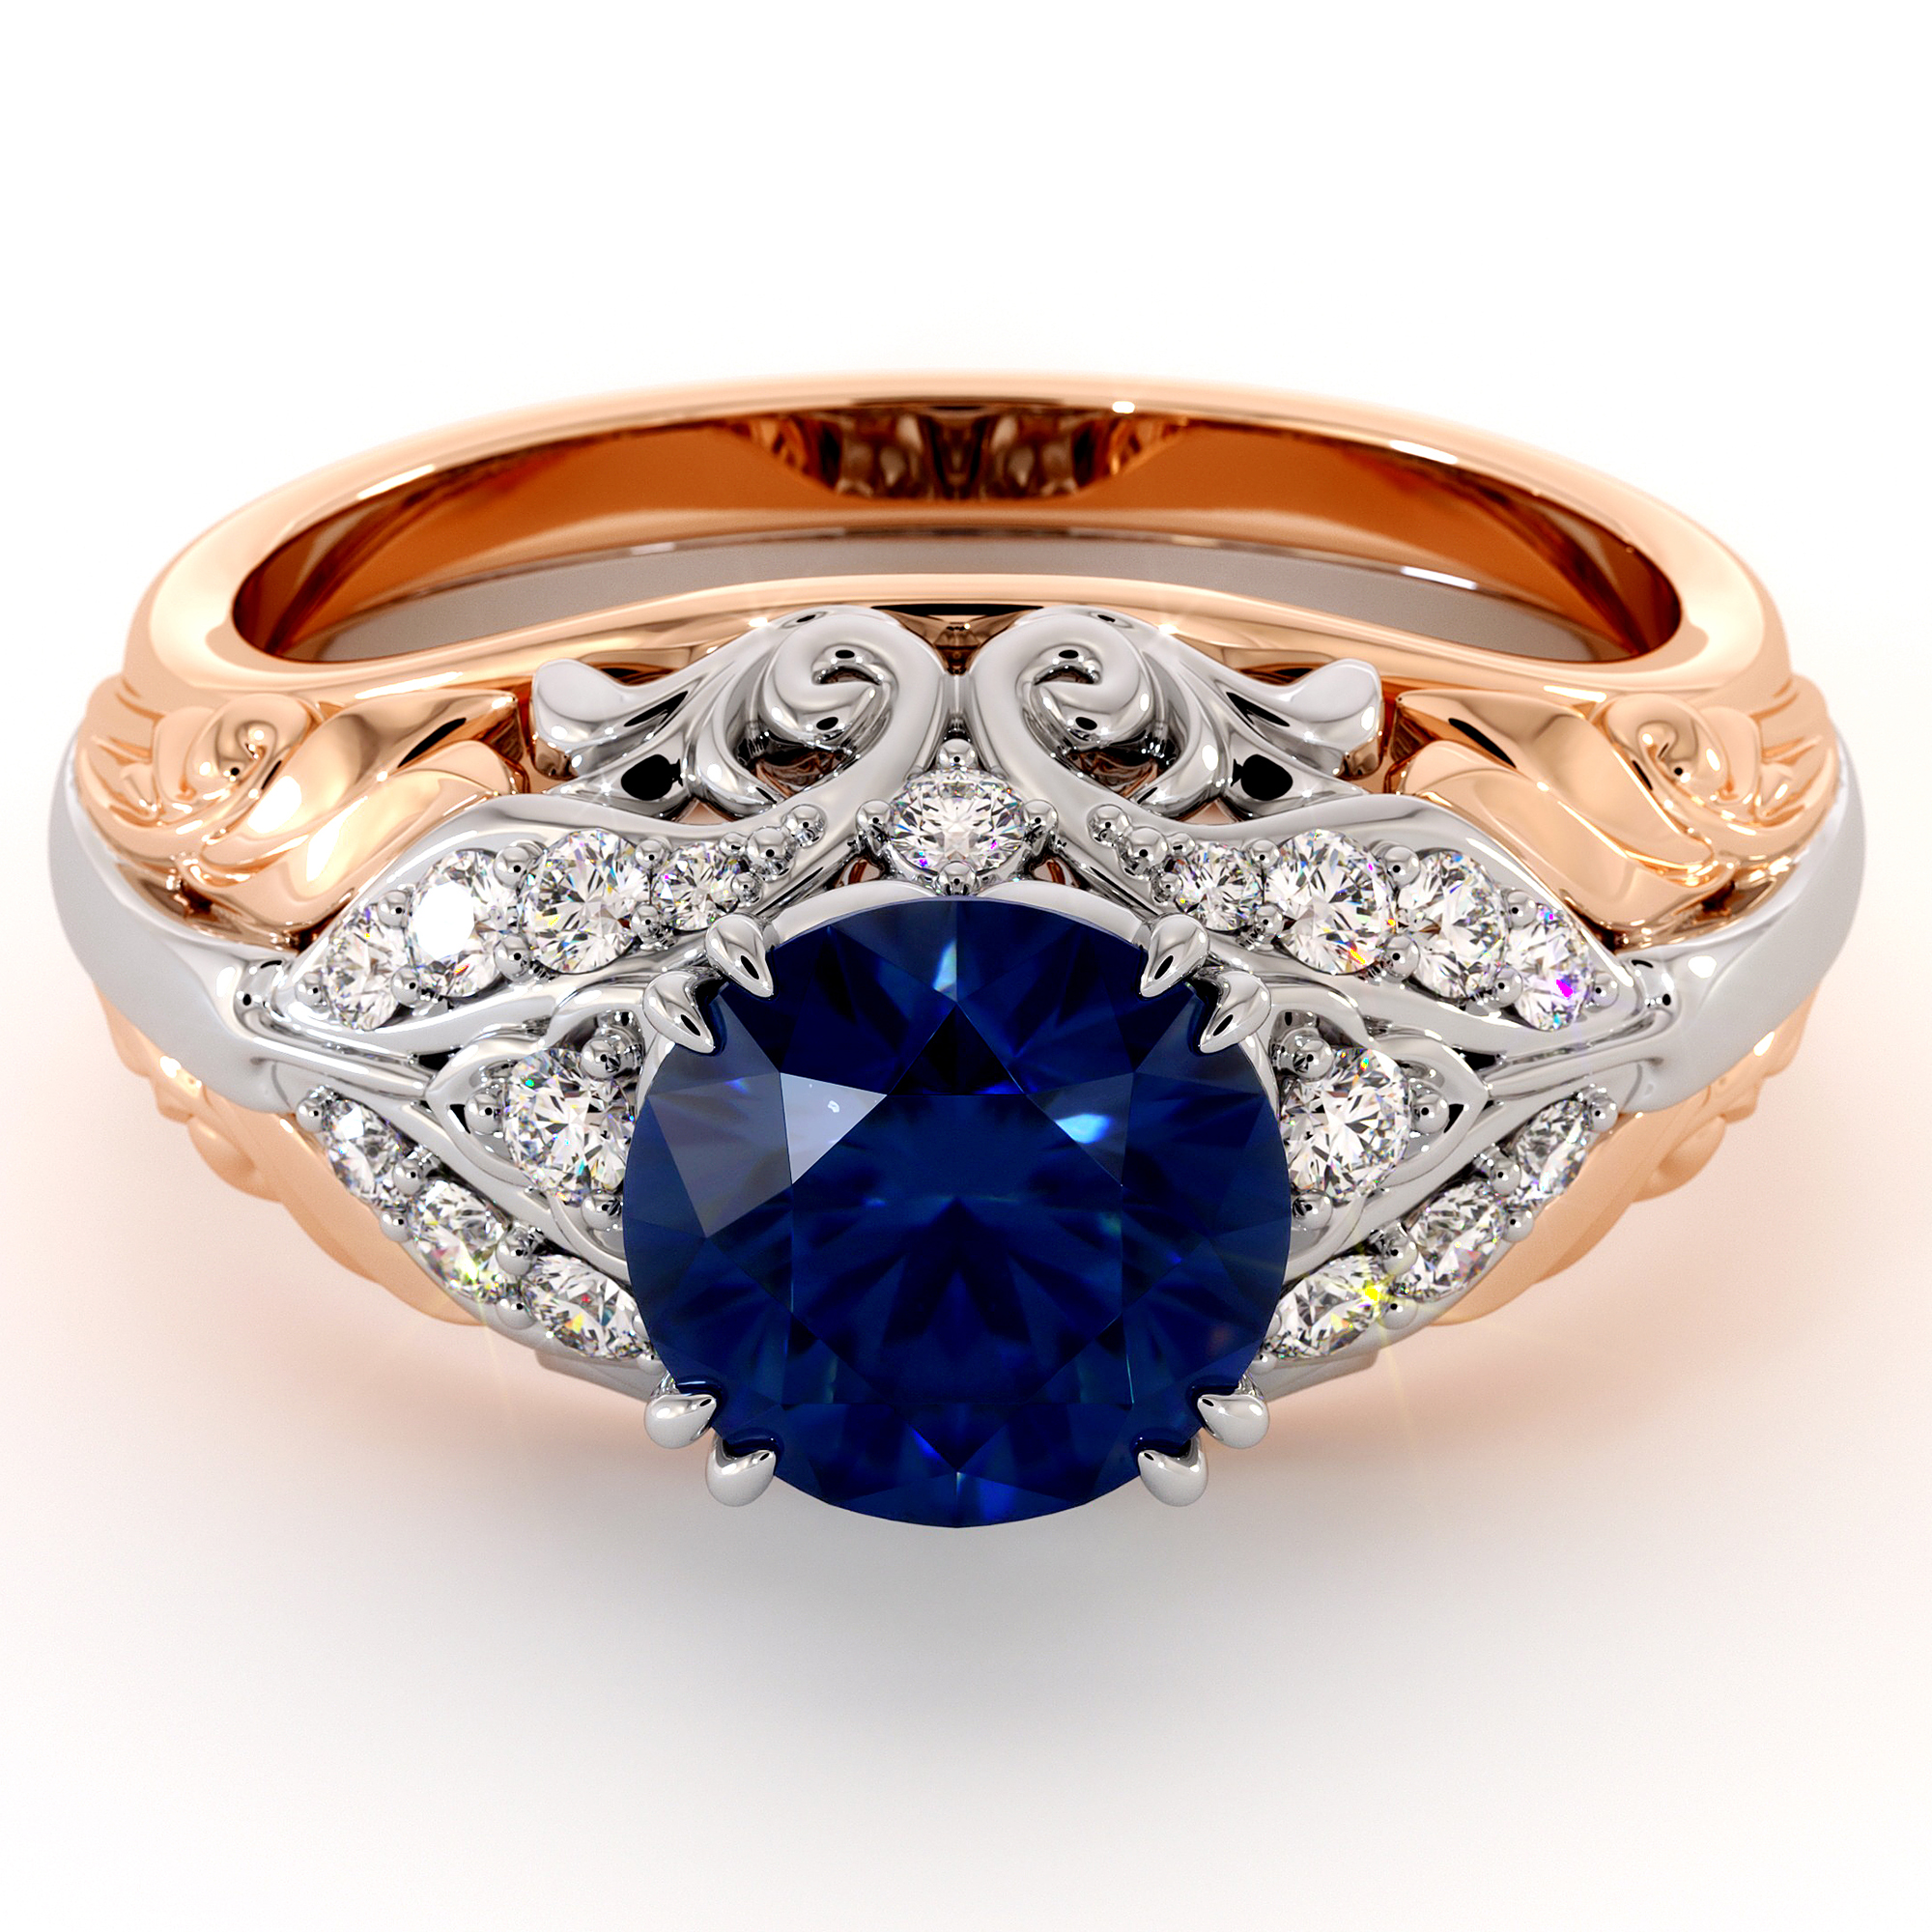 Unique Sapphire Filigree Engagement Ring Two Tone Gold Ring For Women's